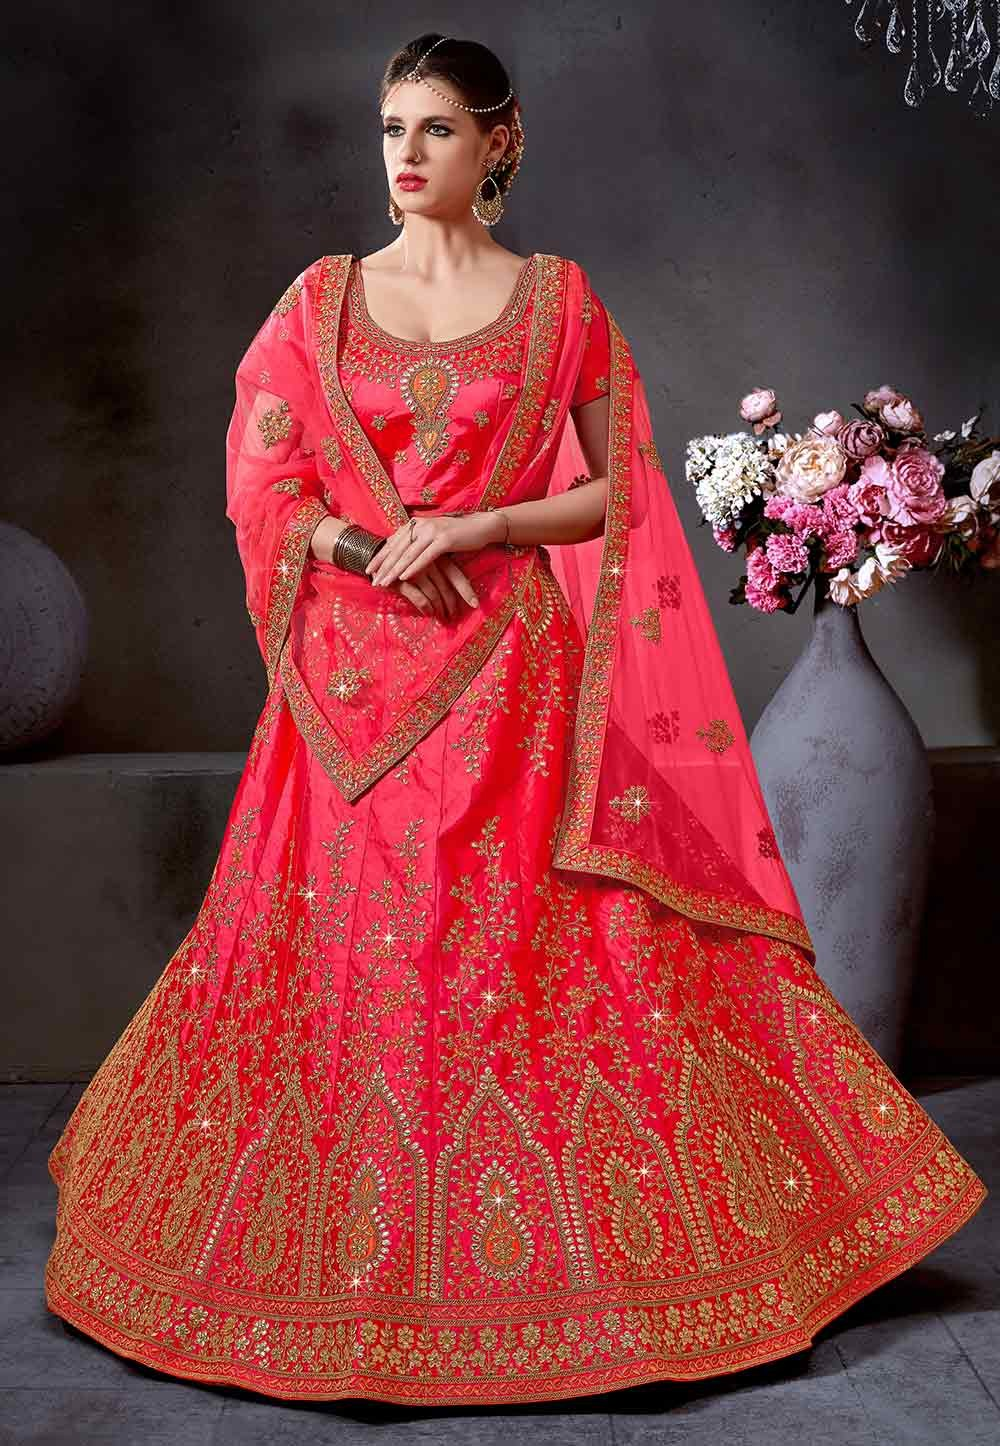 Pink Color Indian Wedding Lehenga Choli.